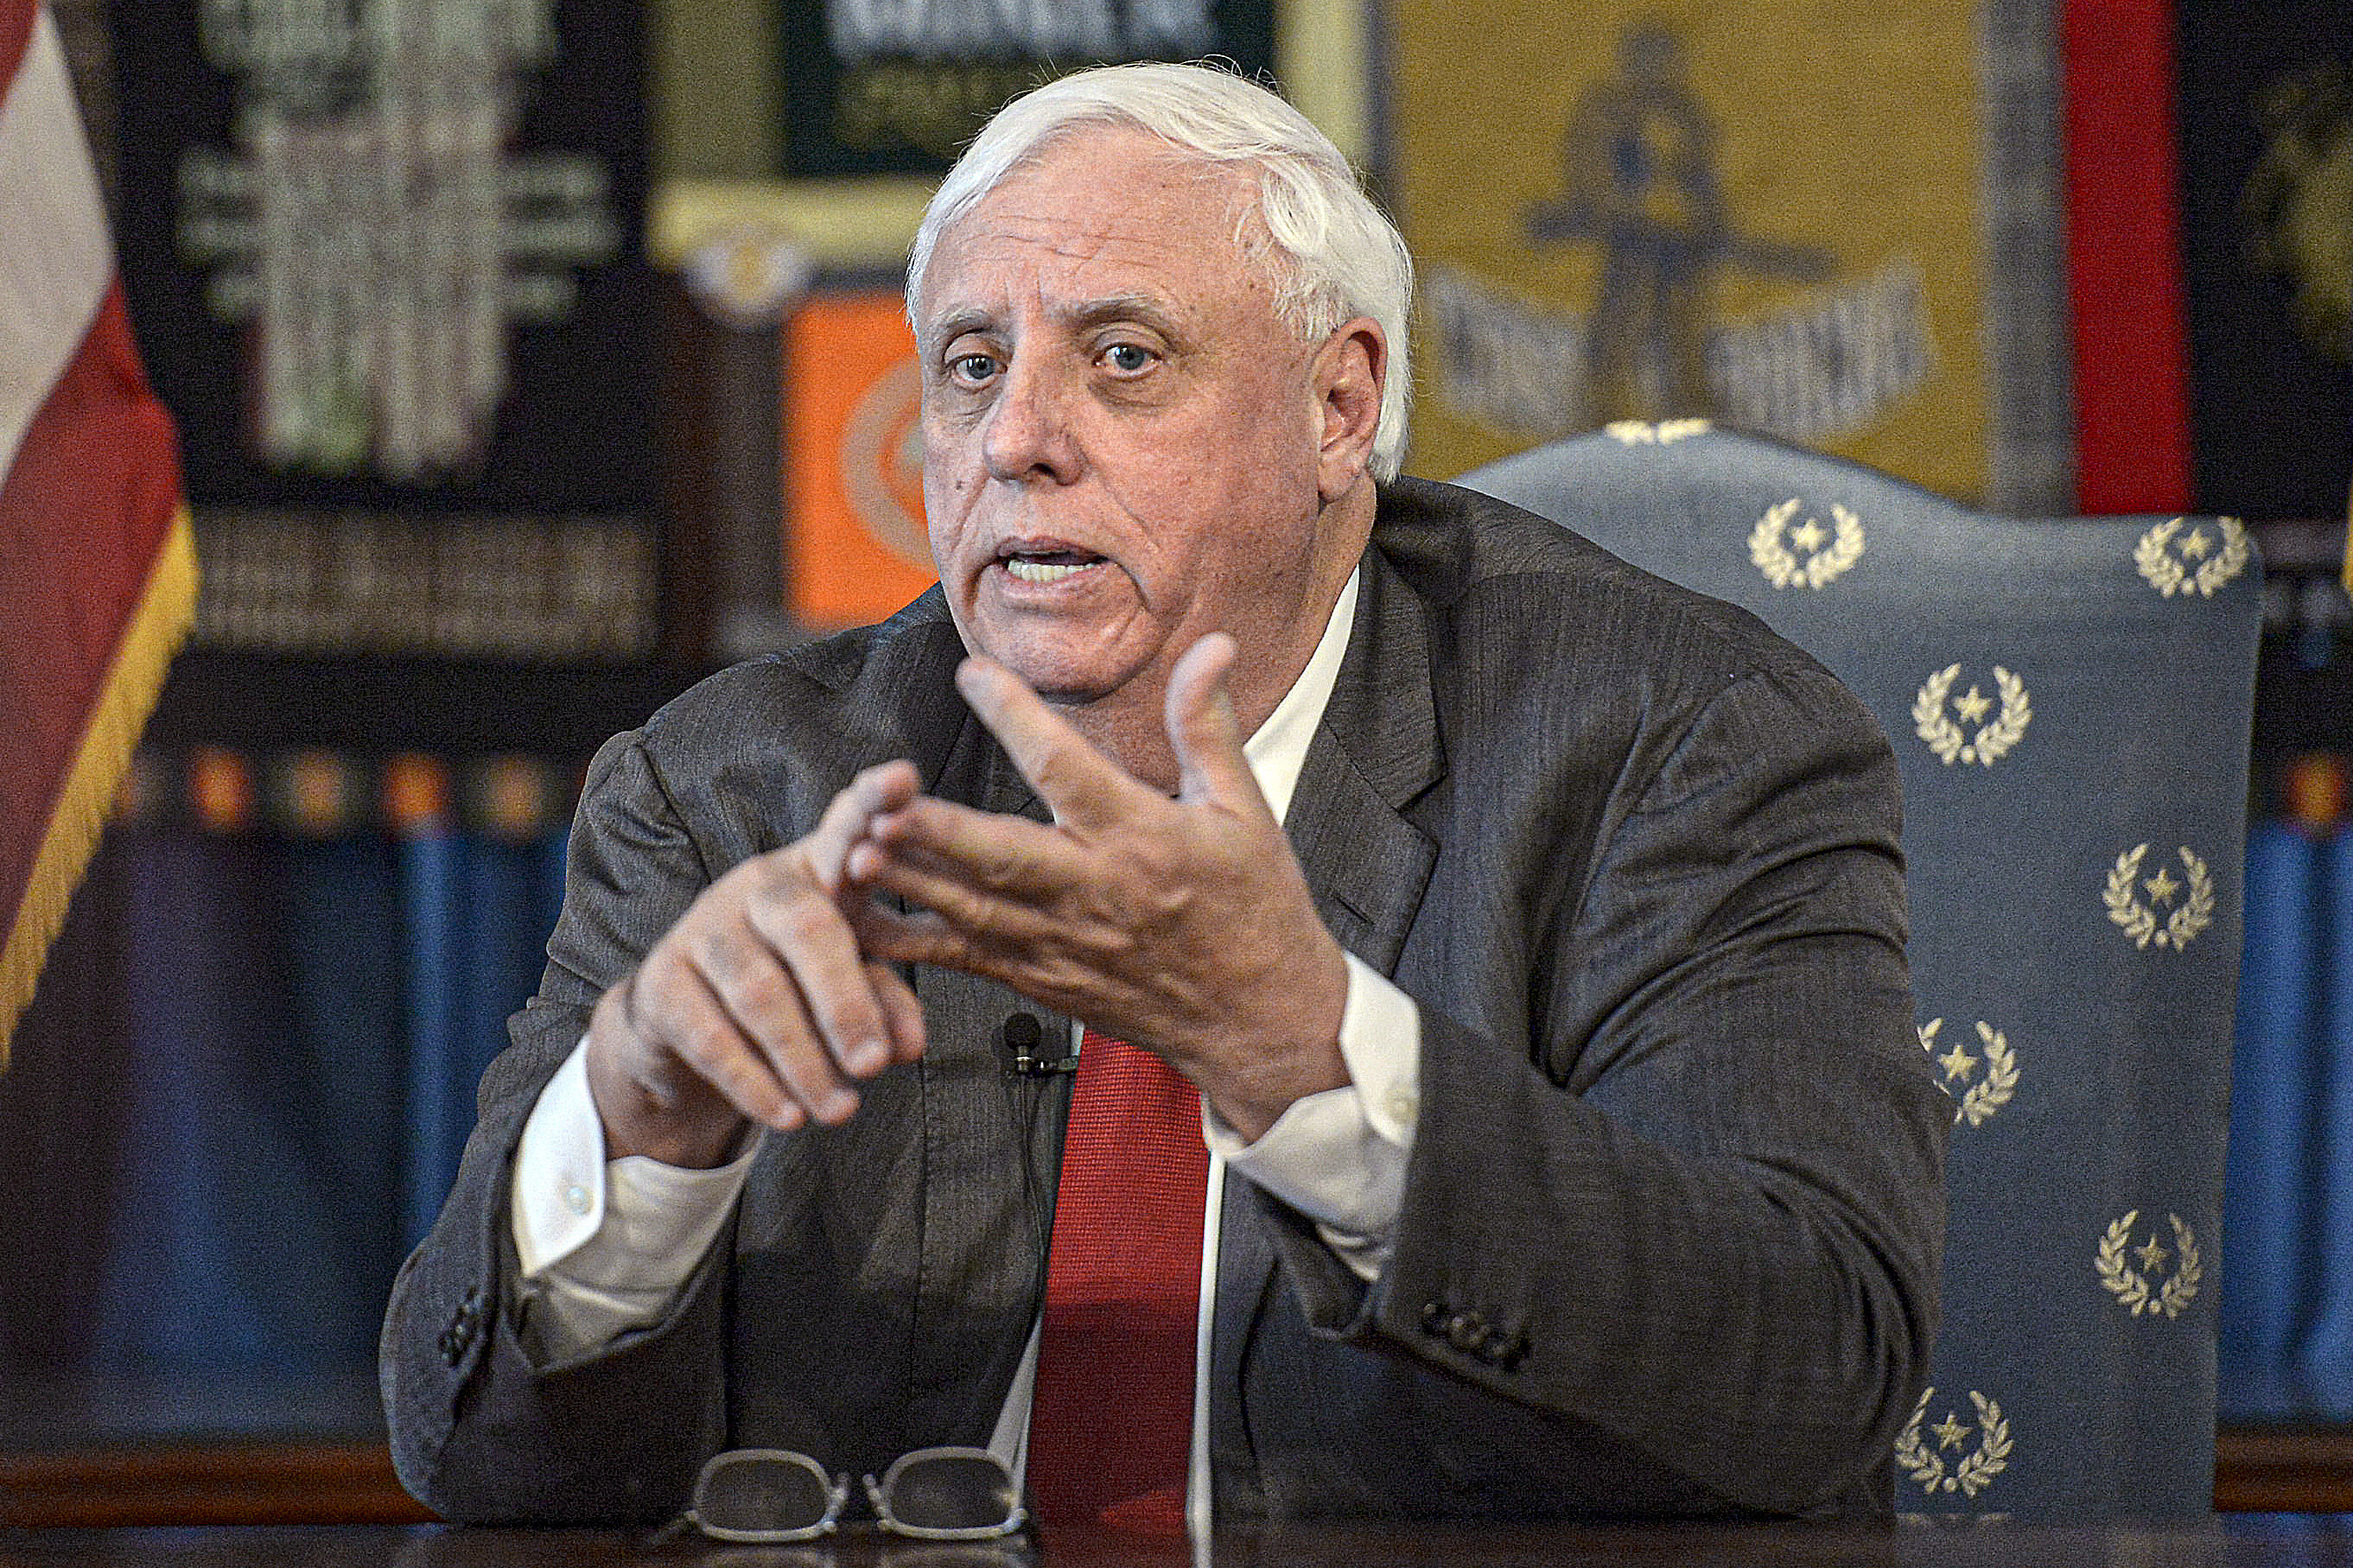 West Virginia governor says he welcomes all, except Obama